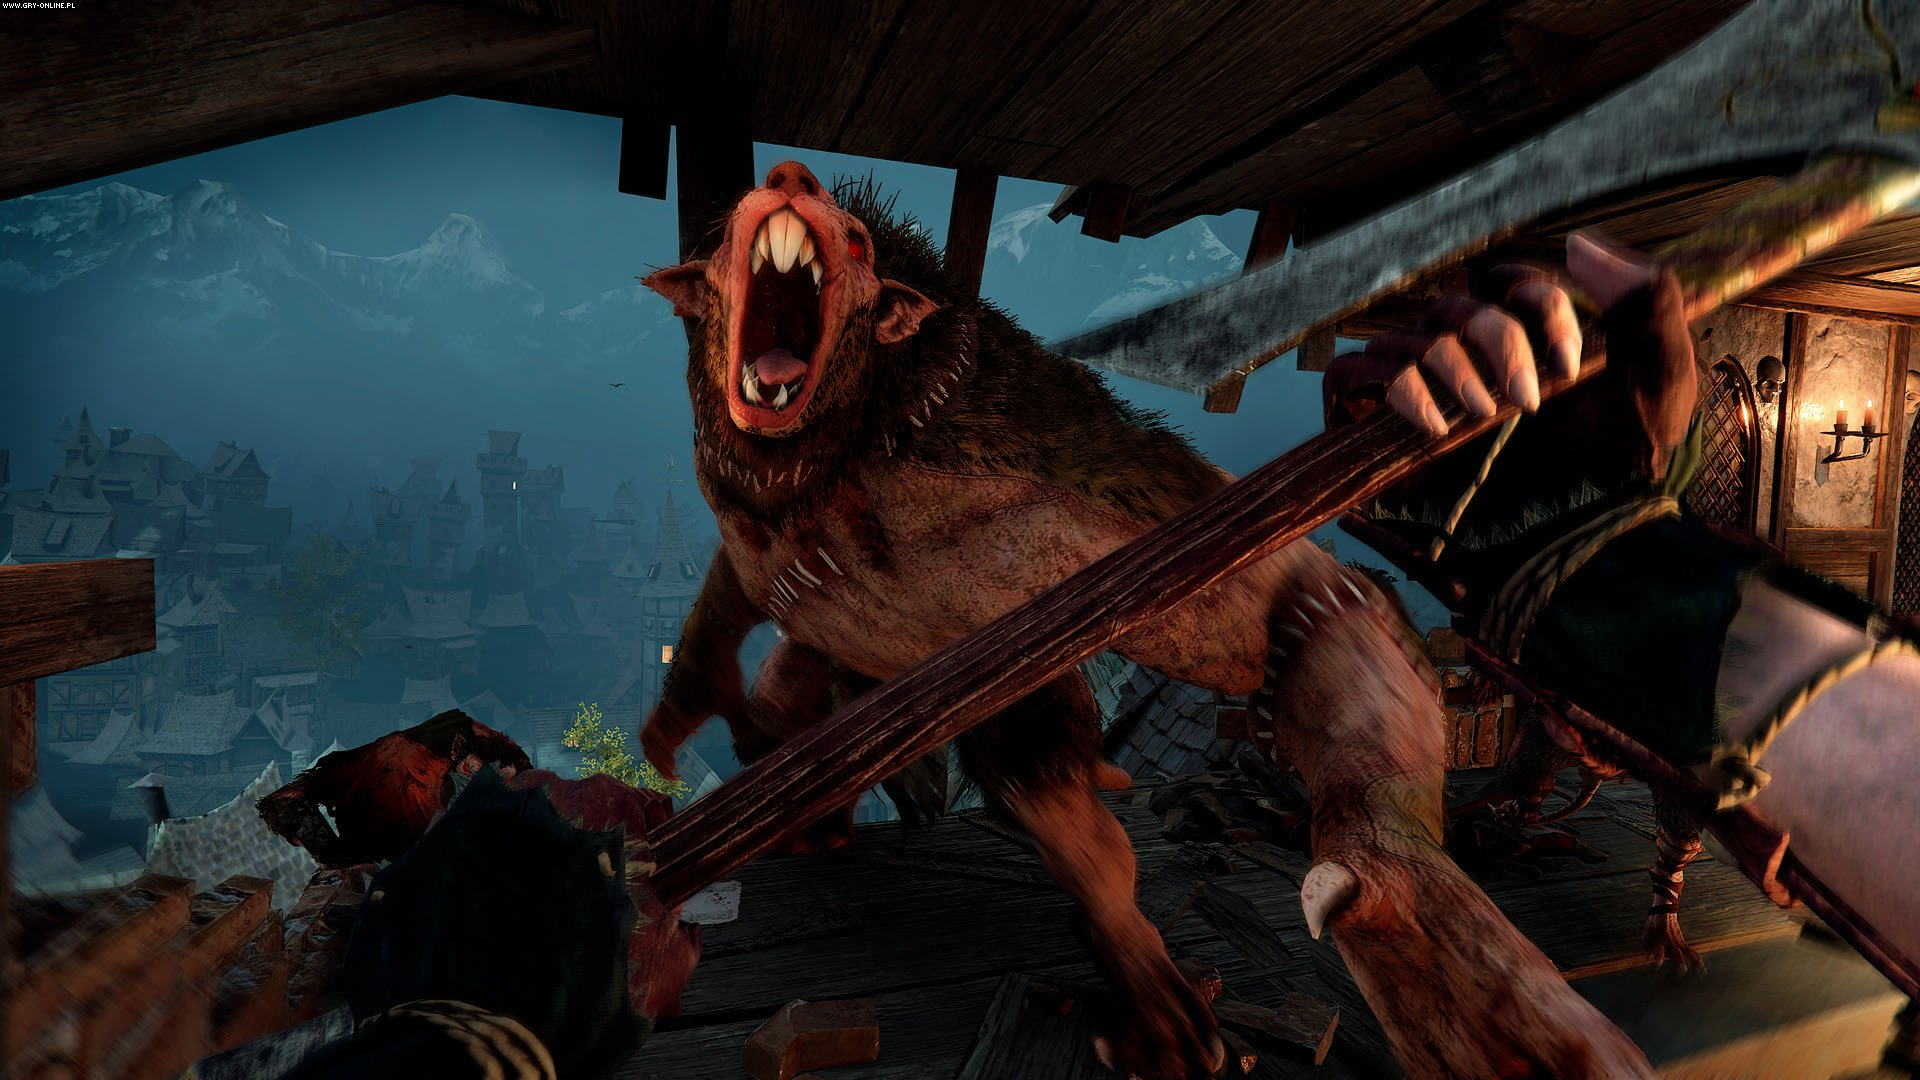 Warhammer: Vermintide 2 PC, PS4, XONE Gry Screen 4/76, Fatshark